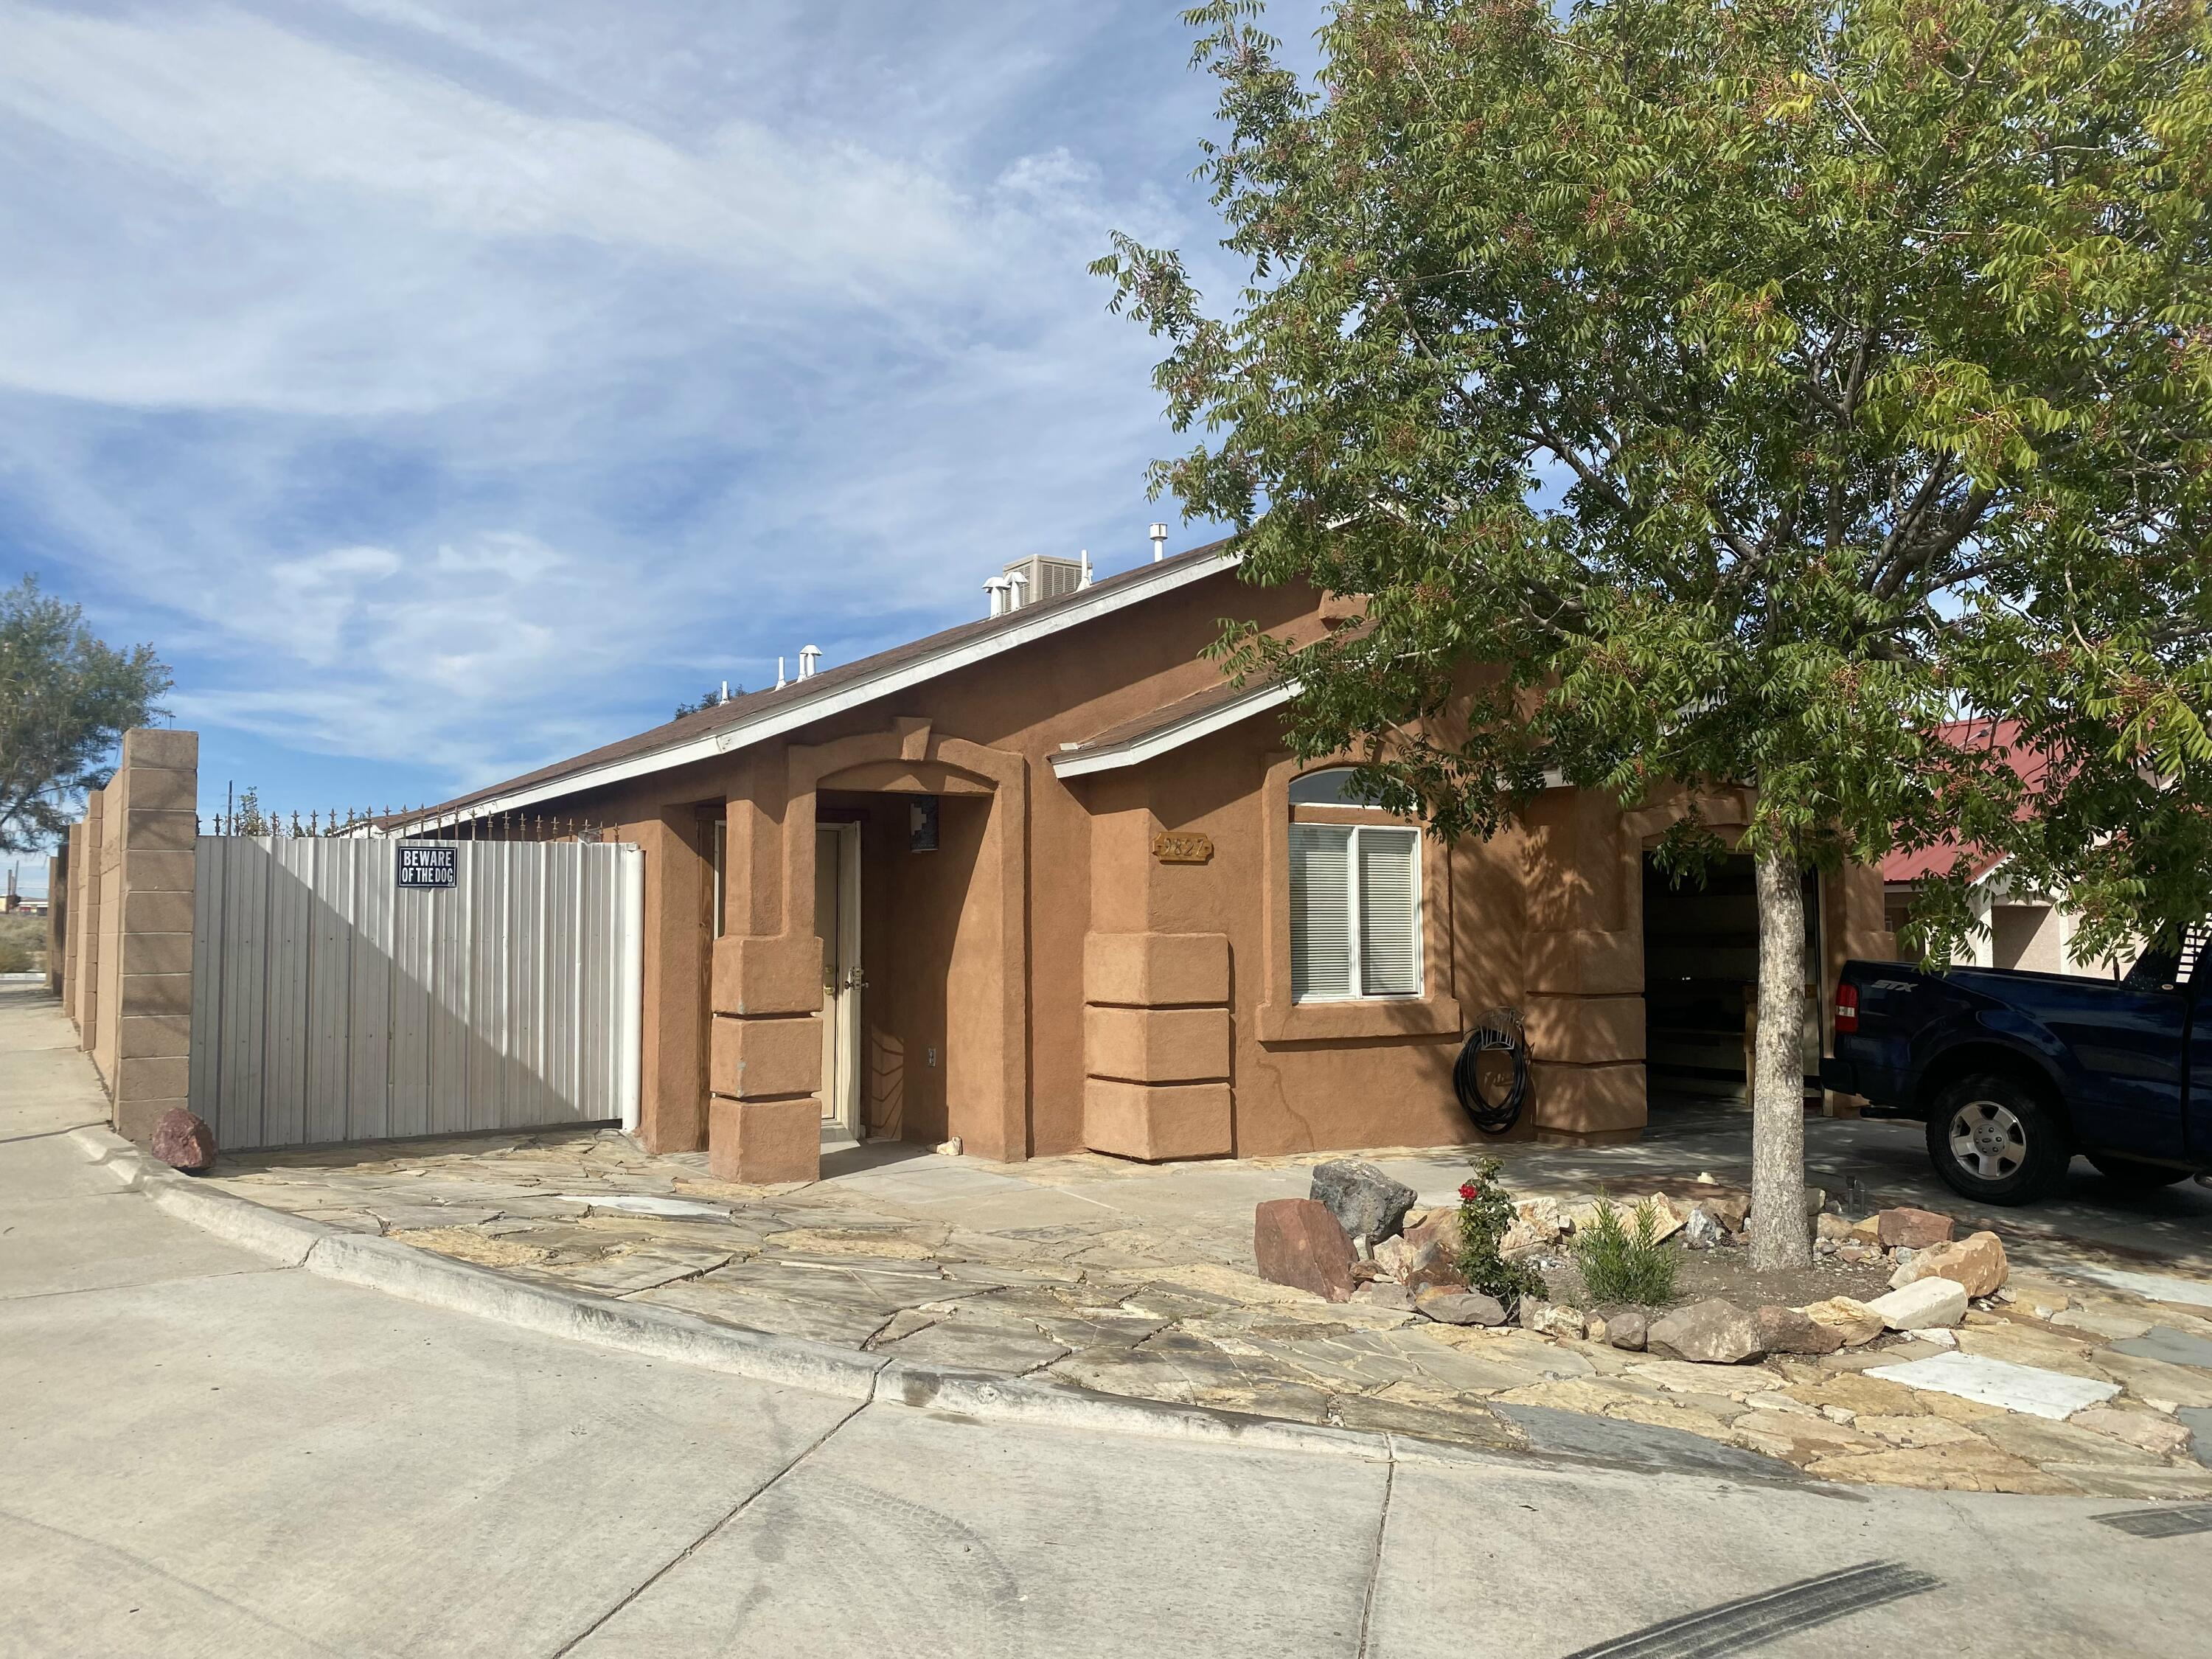 Corner Lot, front and back yard show pride of ownership flagstone throughout, mature fruit trees and amazing vegetable garden. Home features 2 big bedrooms, tile and laminate flooring and back yard access.